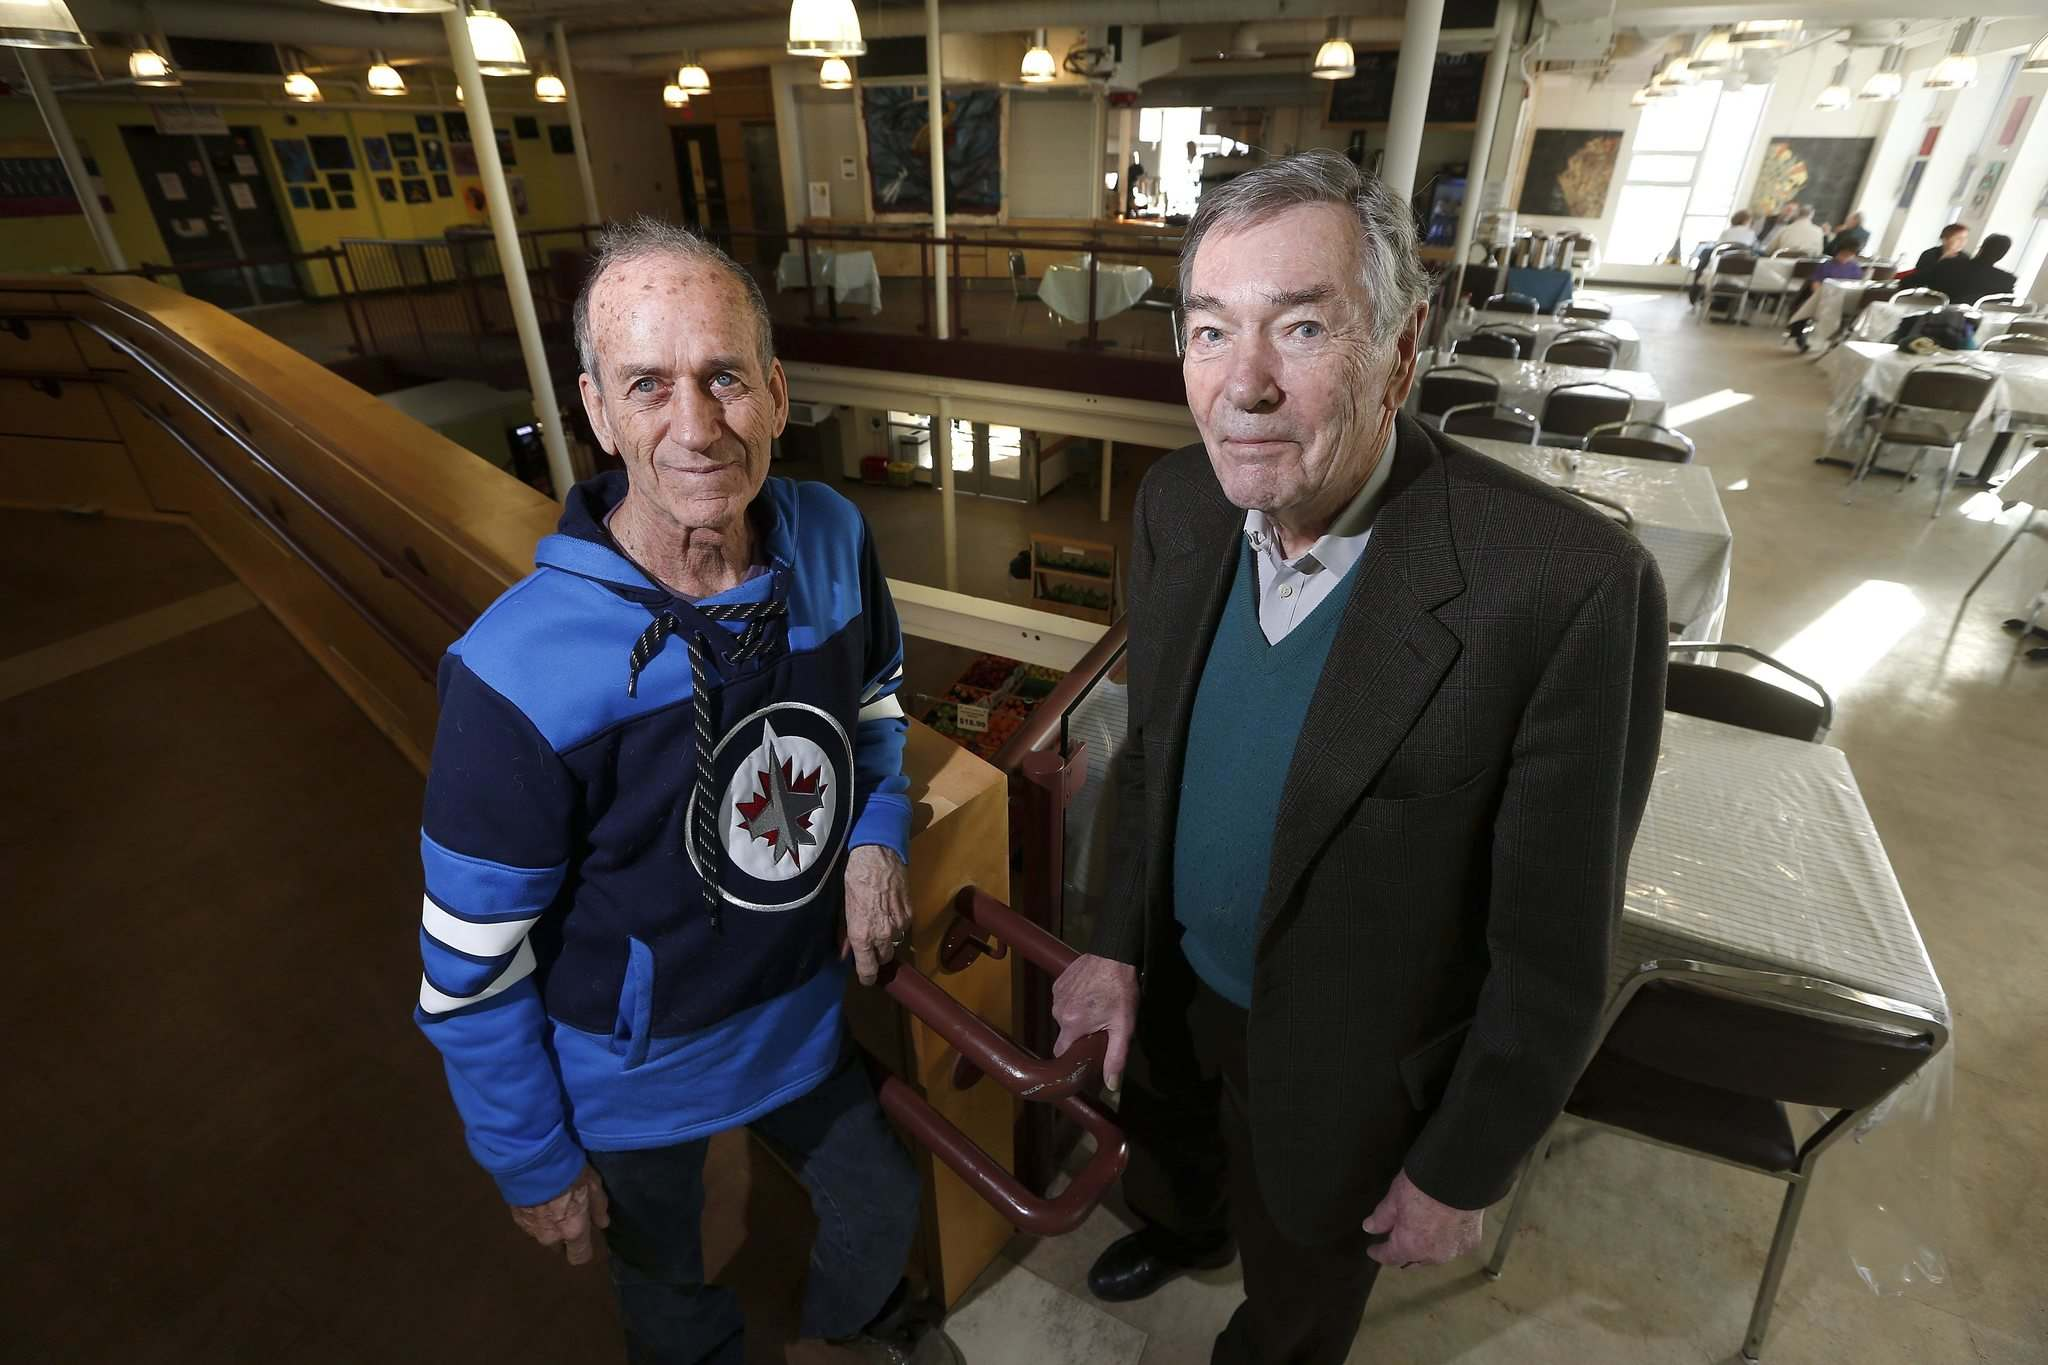 JOHN WOODS / WINNIPEG FREE PRESS</p><p>Sel Burrows (left) and Charles Huband, co-chairmen of the Rail Yard Relocation Project, want to start investigating moving Winnipeg&rsquo;s rail yards from its current location.</p>